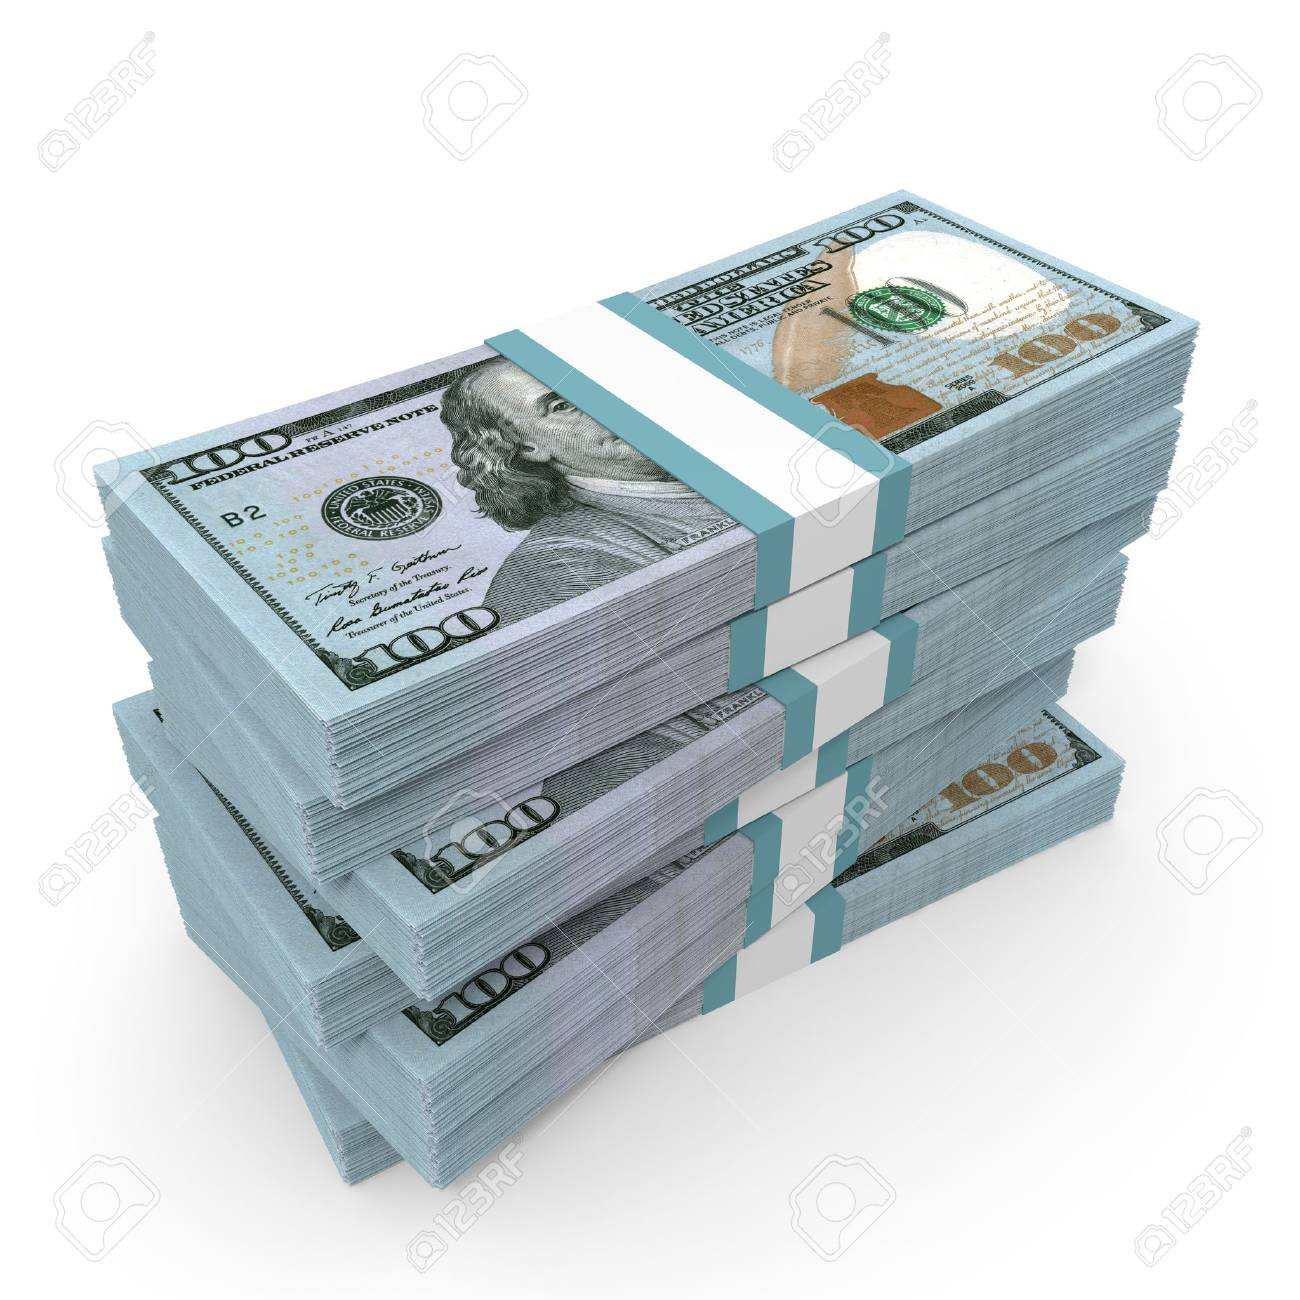 WE OFFE URGENT PAYDAY LOAN TO INDIVIDUAL IN NEED